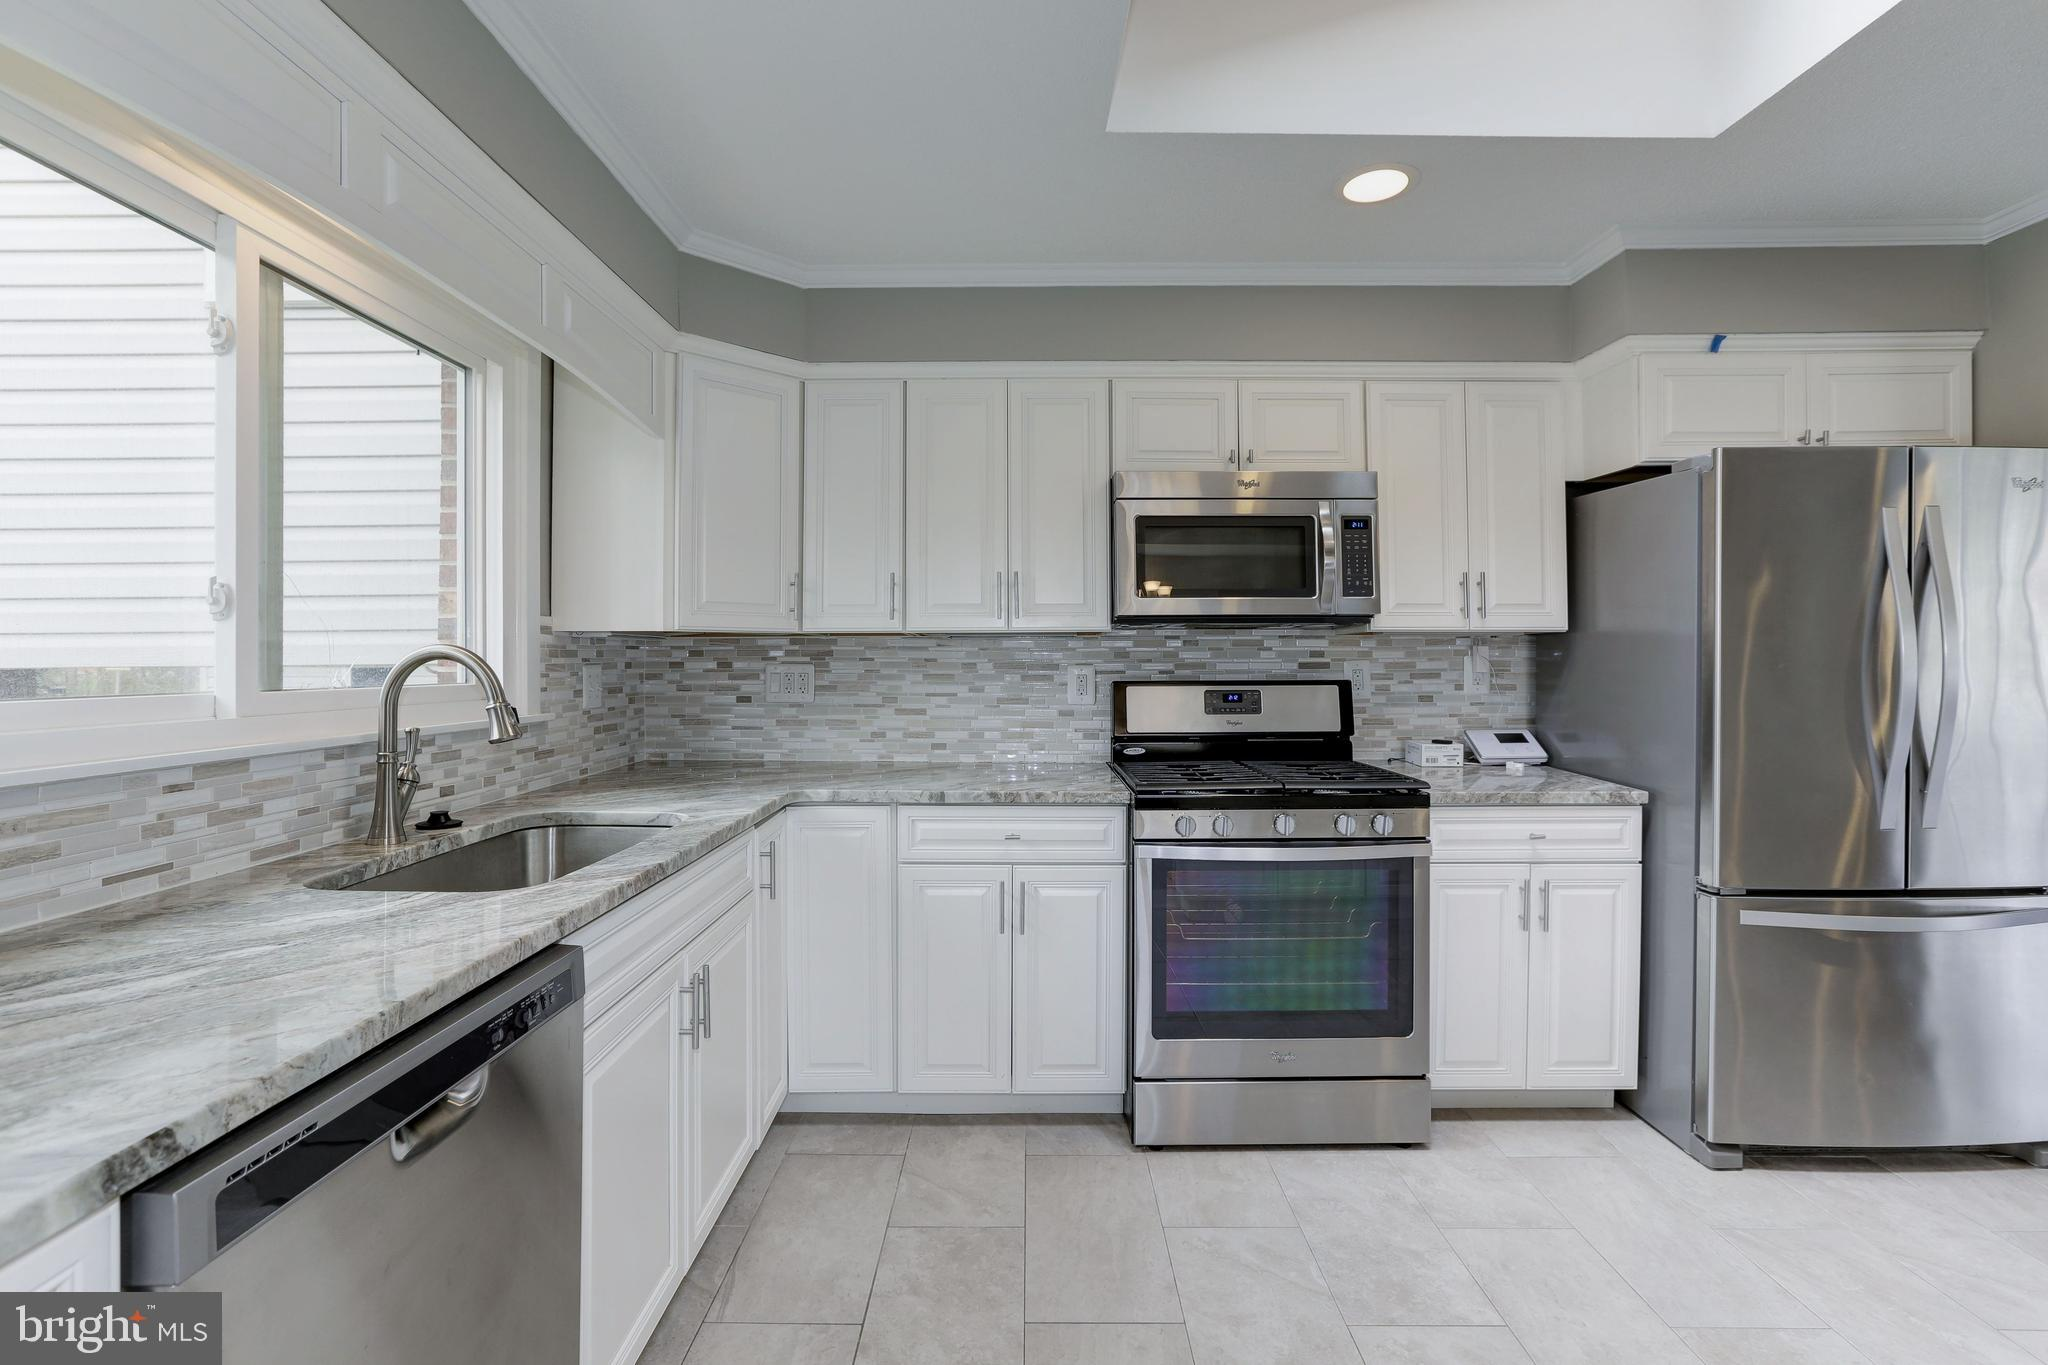 9398 SULAND CIRCLE, Ellicott City, 21042 | The Dave and Dave Team